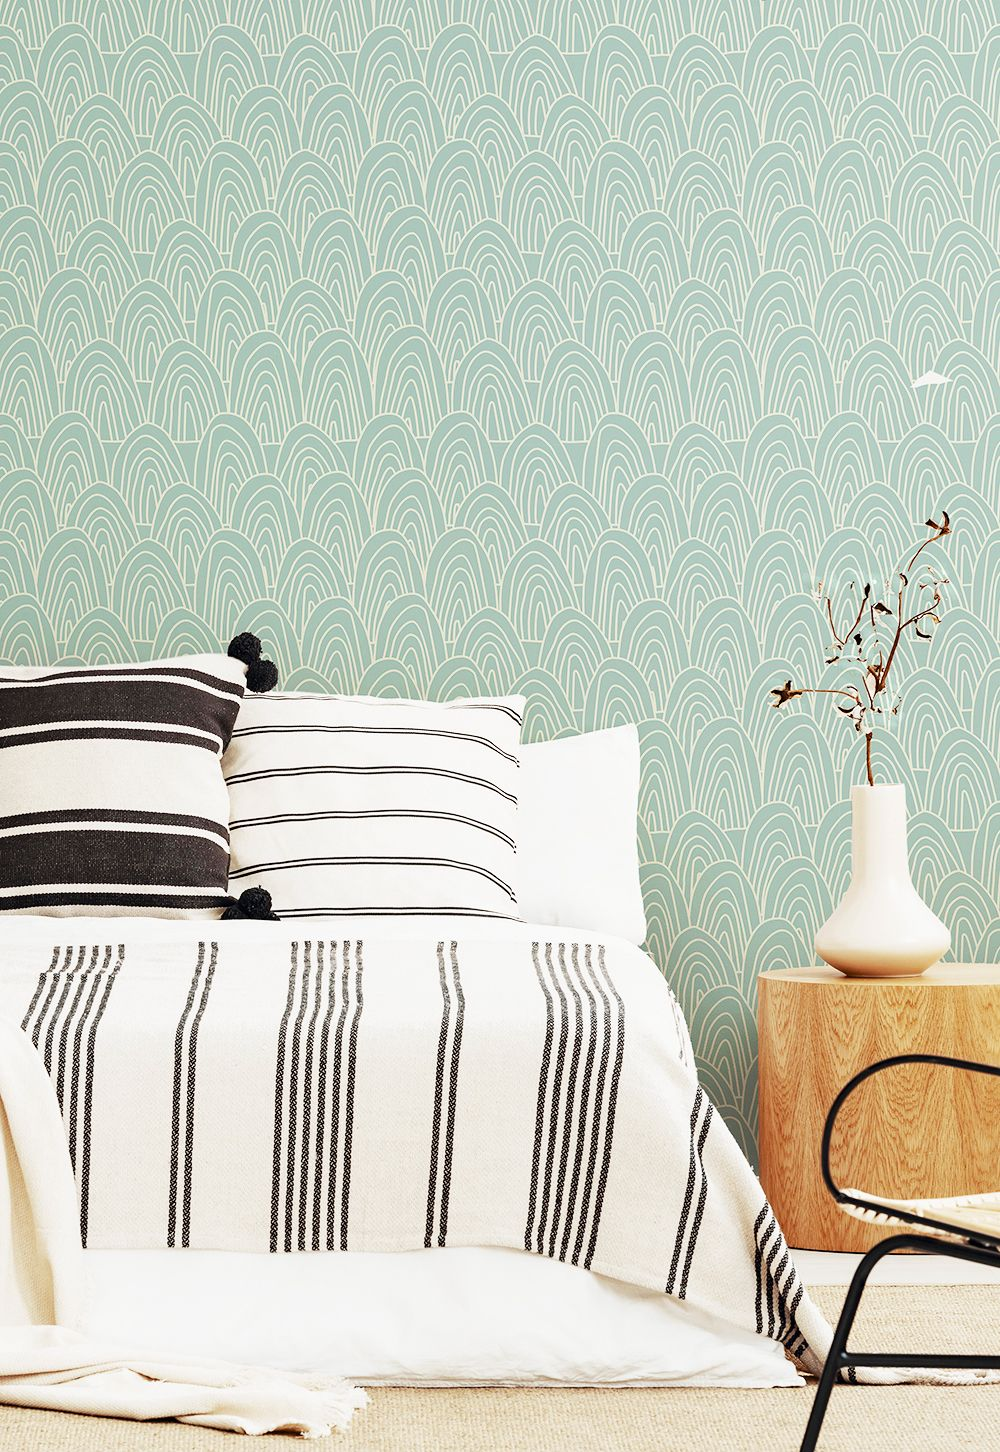 Gray And Green Seamless Basic Peel And Stick Removable Wallpaper 8446 Removable Wallpaper Bedroom Removable Wallpaper Wall Coverings Green and white wallpaper for walls